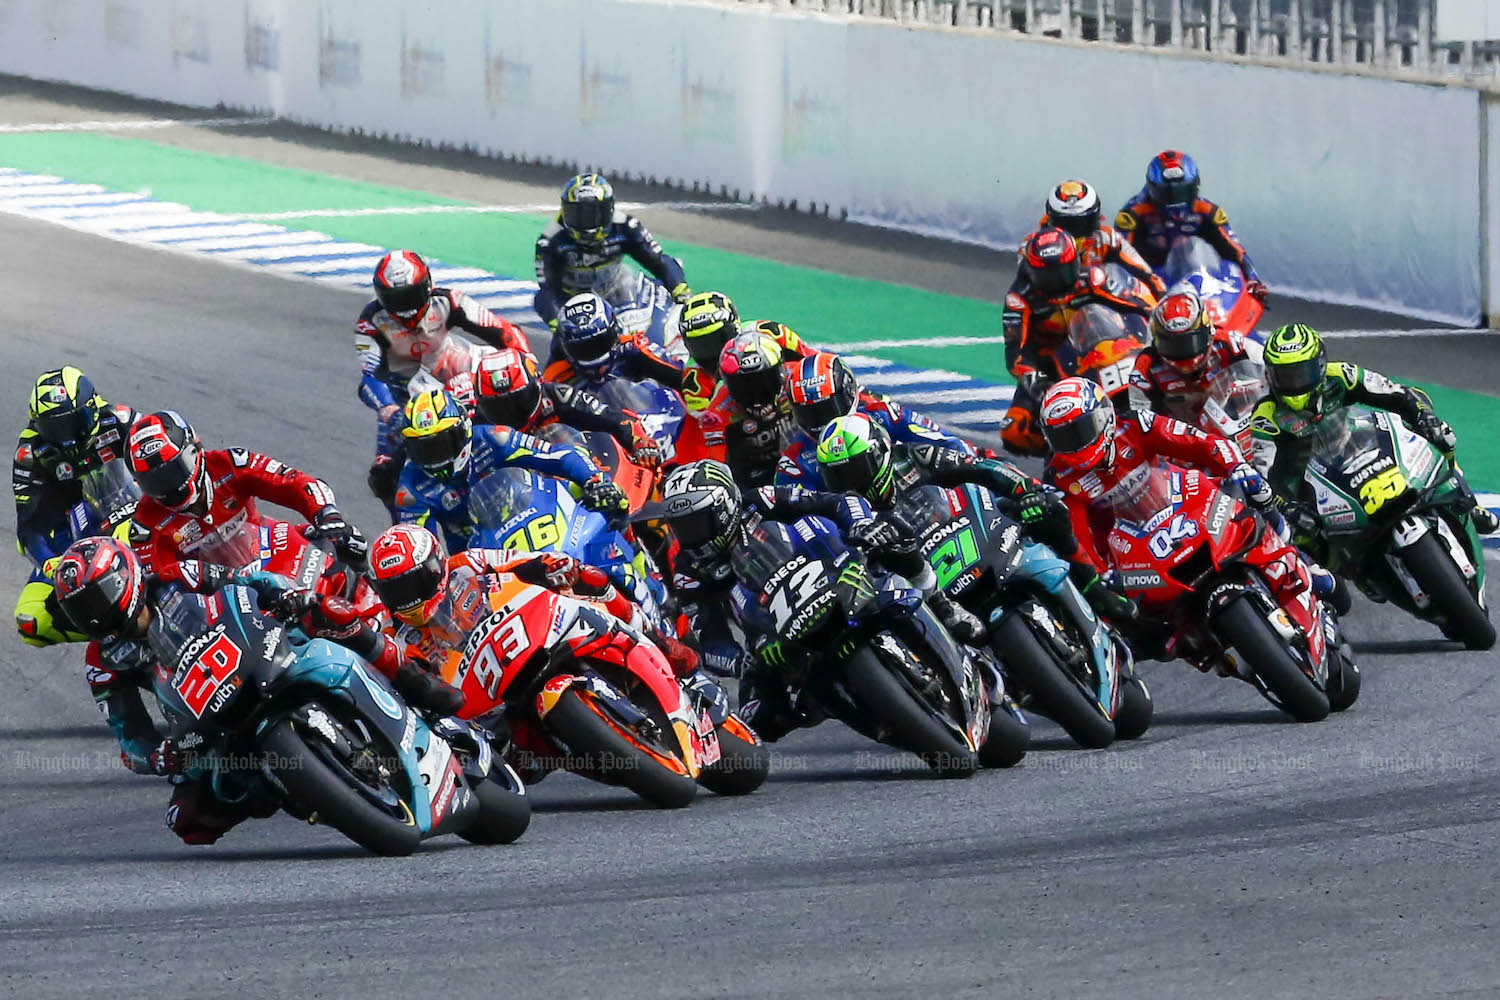 Riders take part in the 2019 Thailand Grand Prix at the Chang International Circuit in Buri Ram in October last year. (Post File Photo)